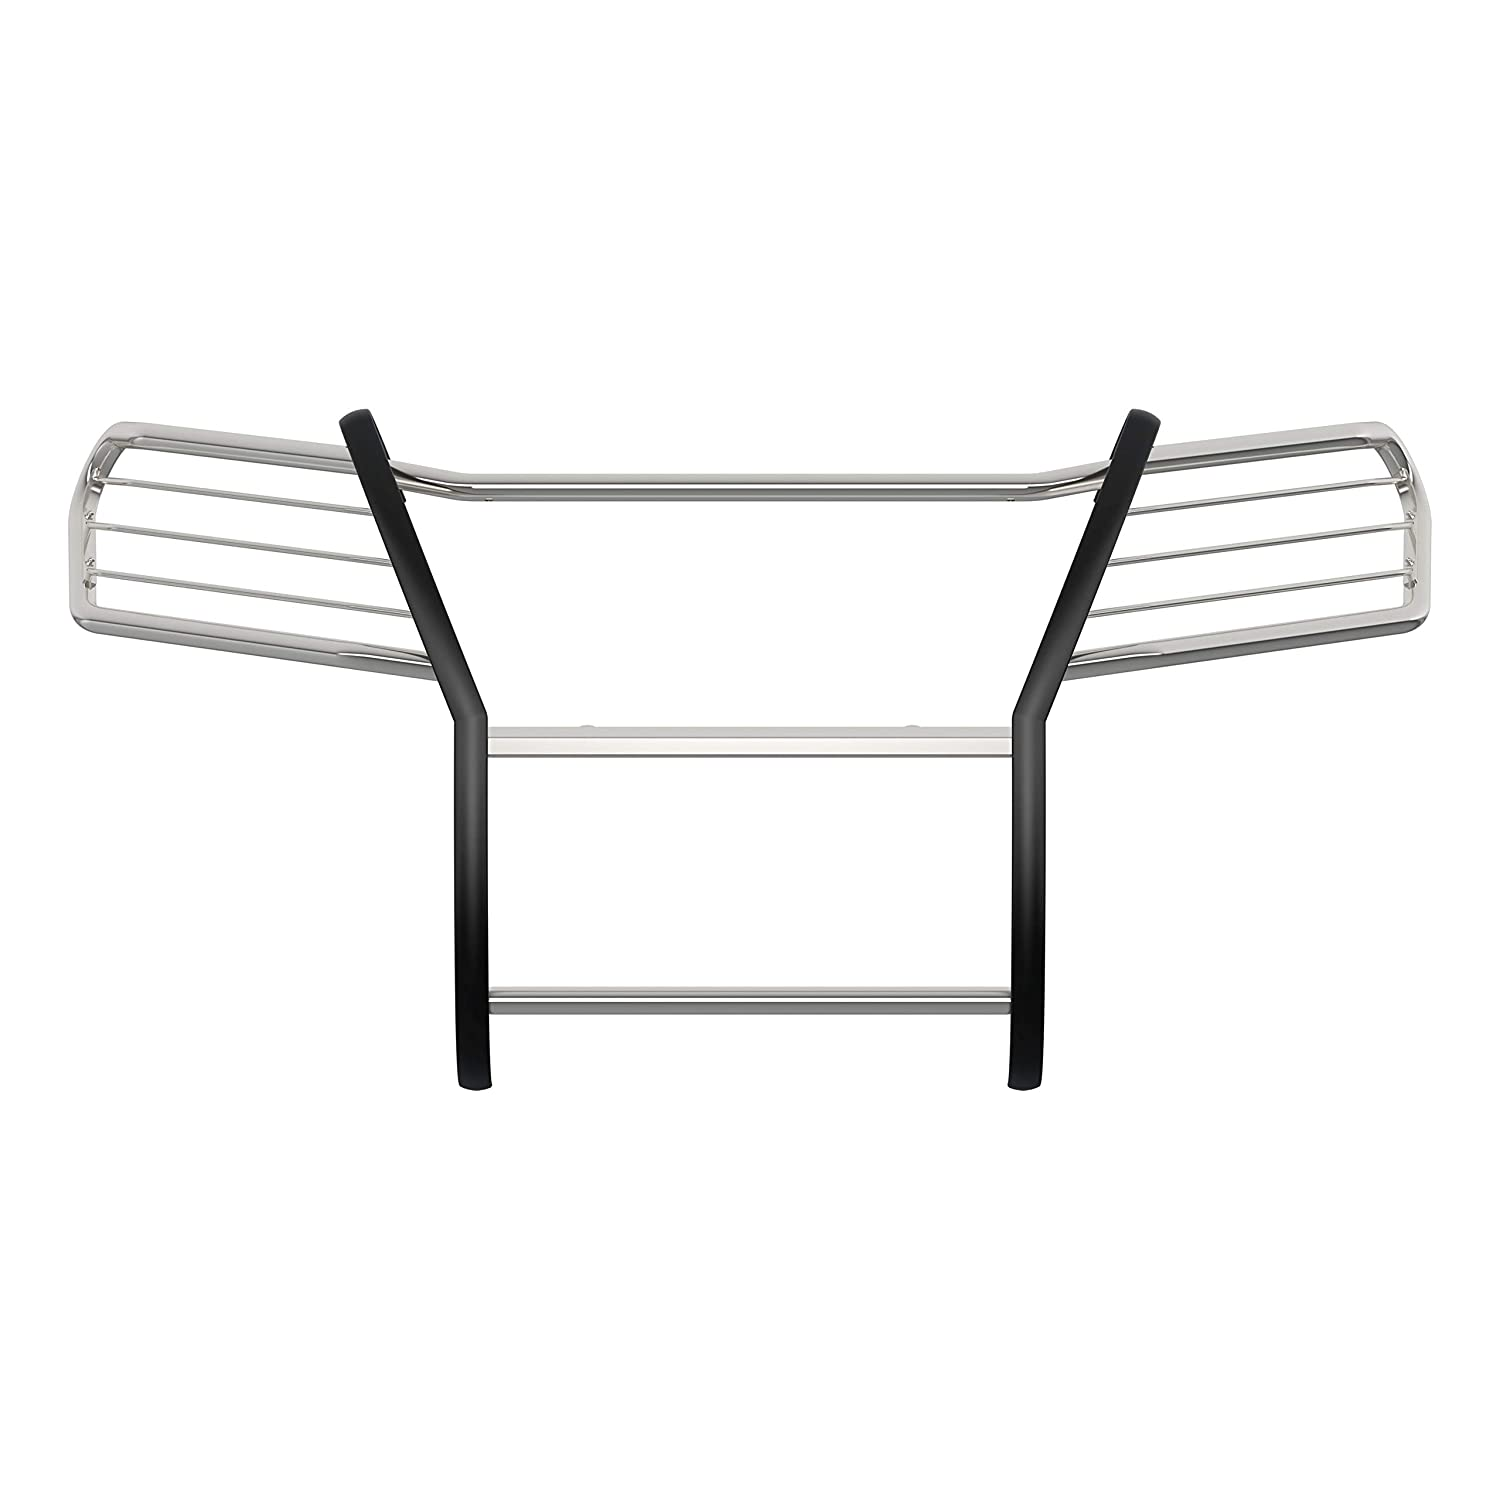 ARIES 6057-2 1-1//2-Inch Polished Stainless Steel Grill Guard Select Honda Ridgeline